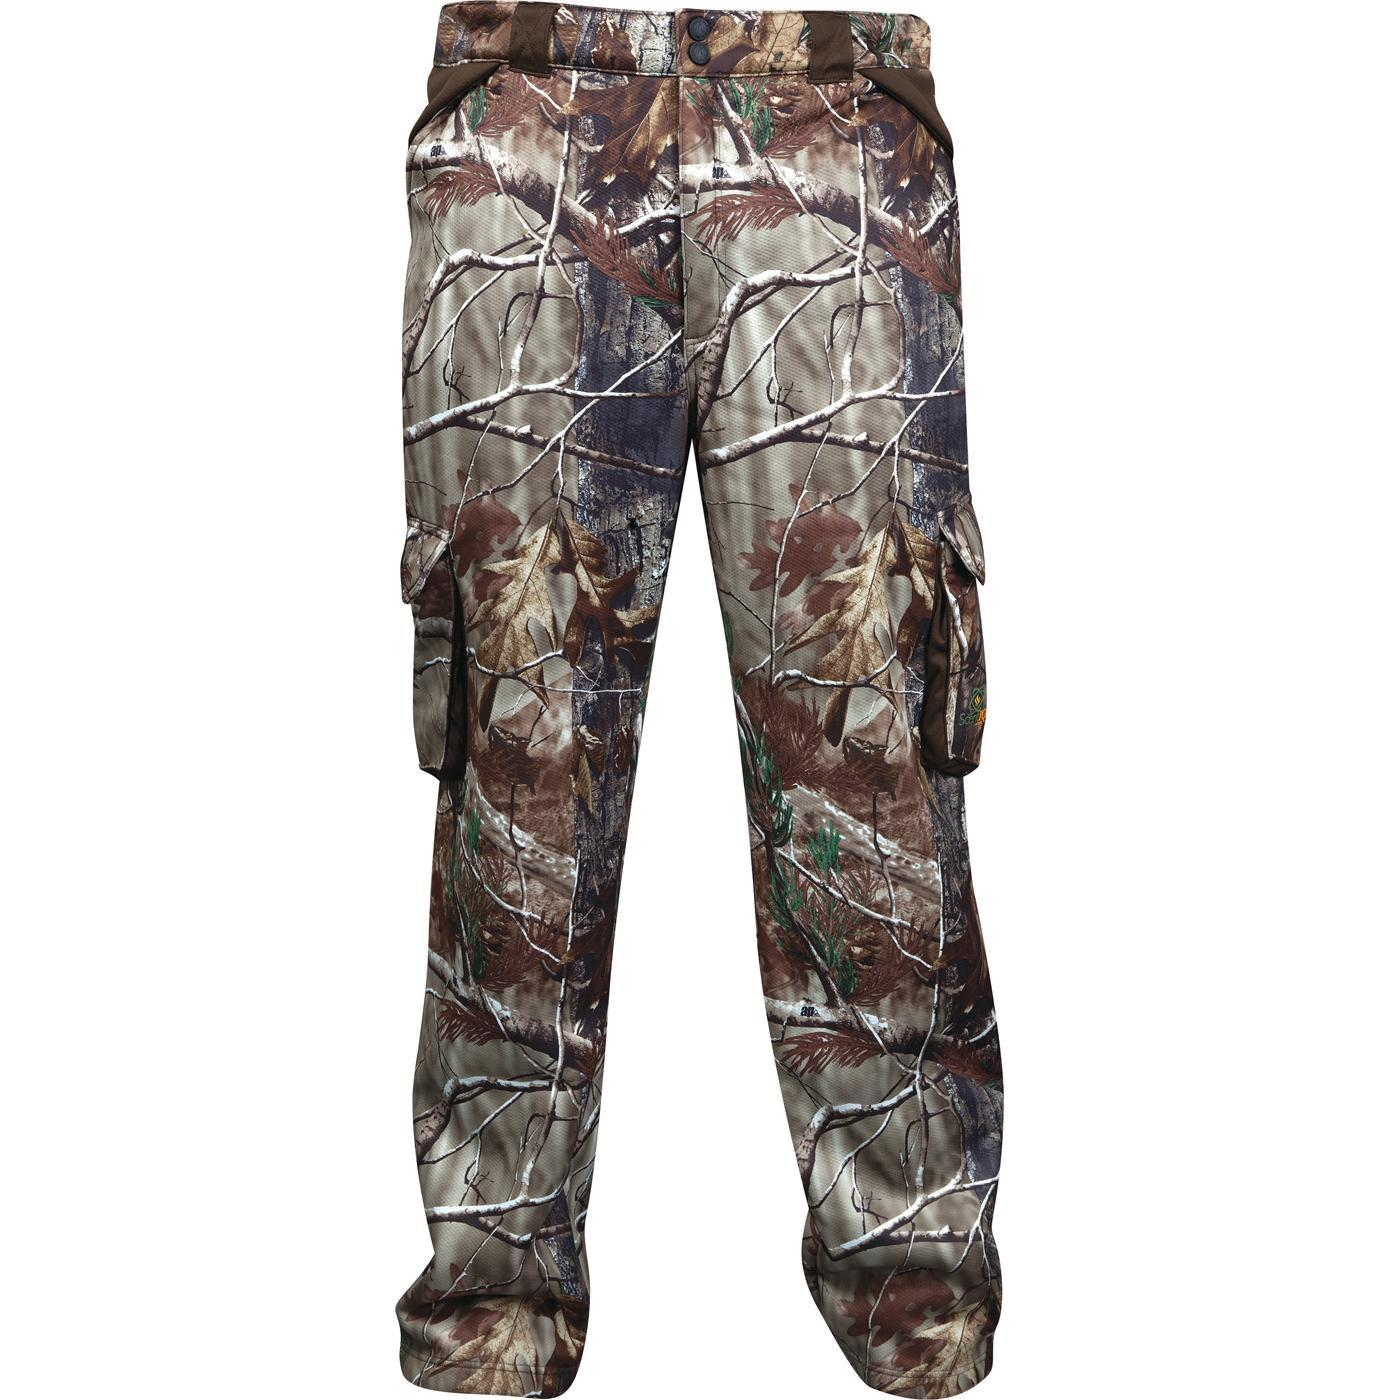 b637a9a71557d Men's Rocky Athletic Mobility Cargo Pants - Style #600386